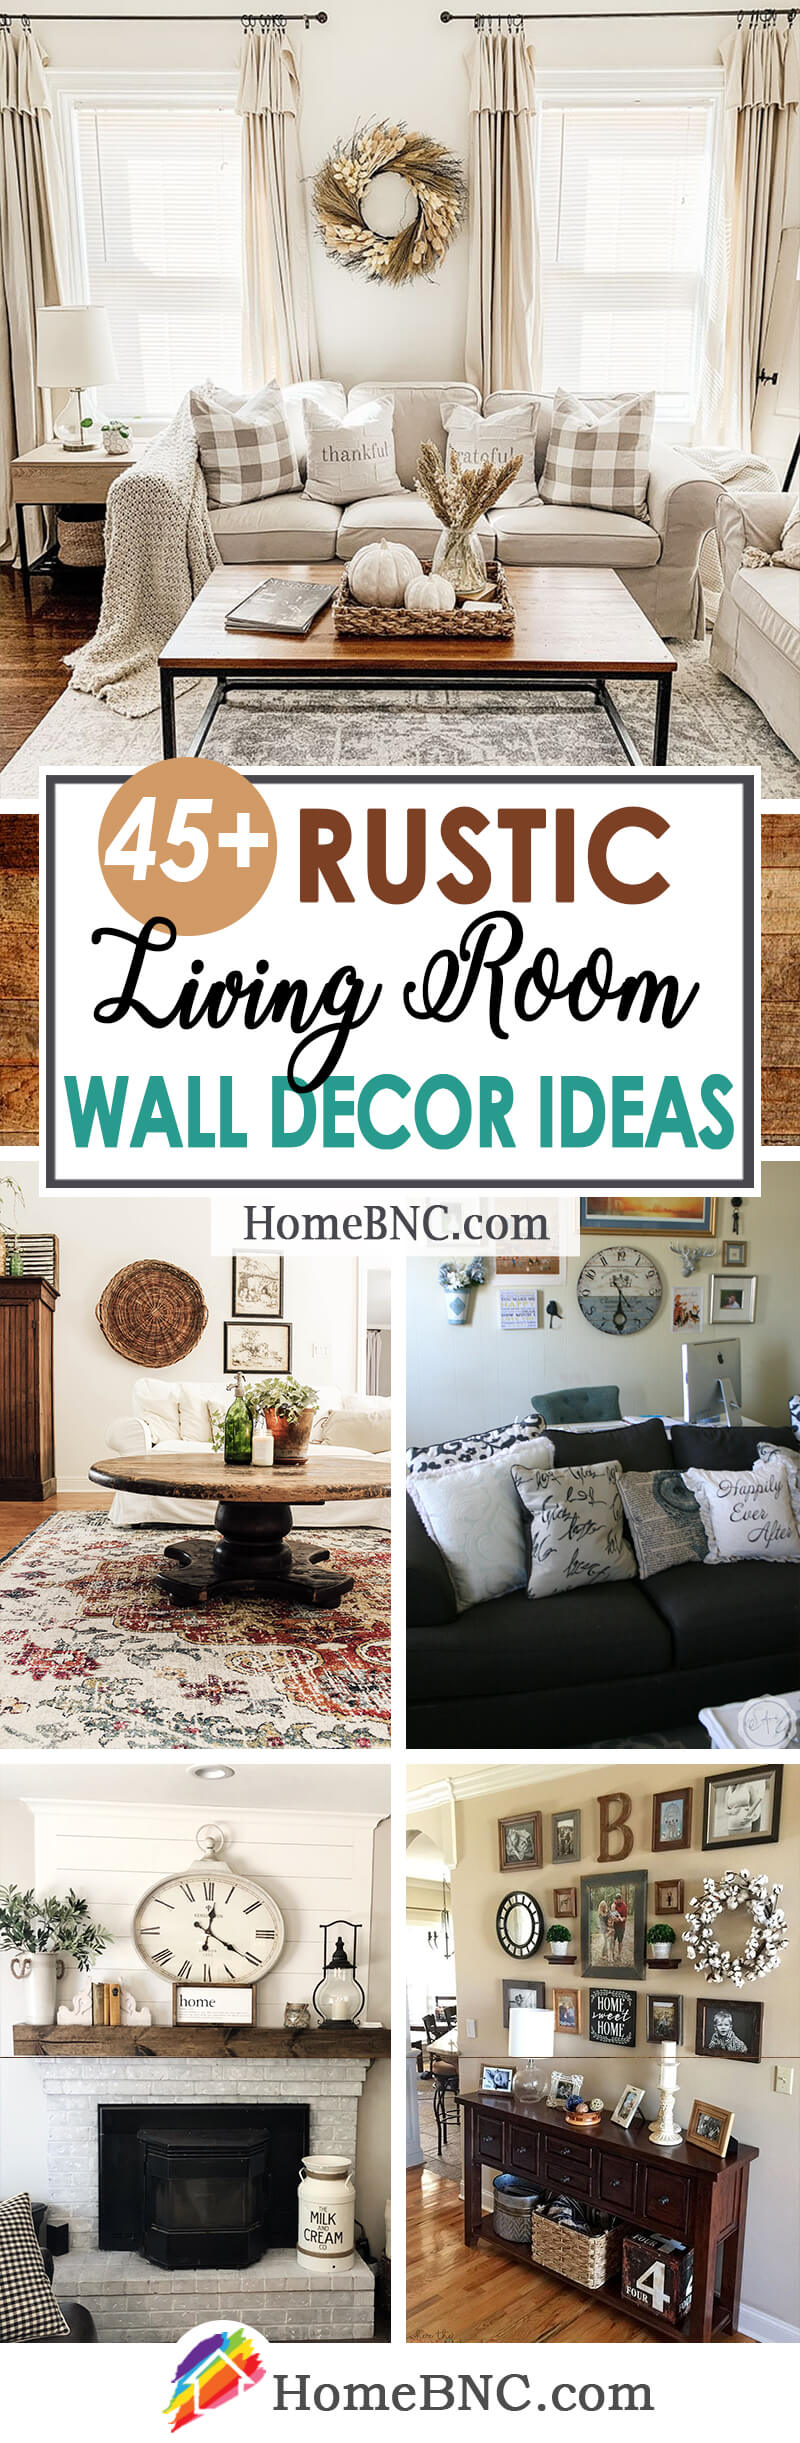 45 Best Rustic Living Room Wall Decor Ideas And Designs For 2021